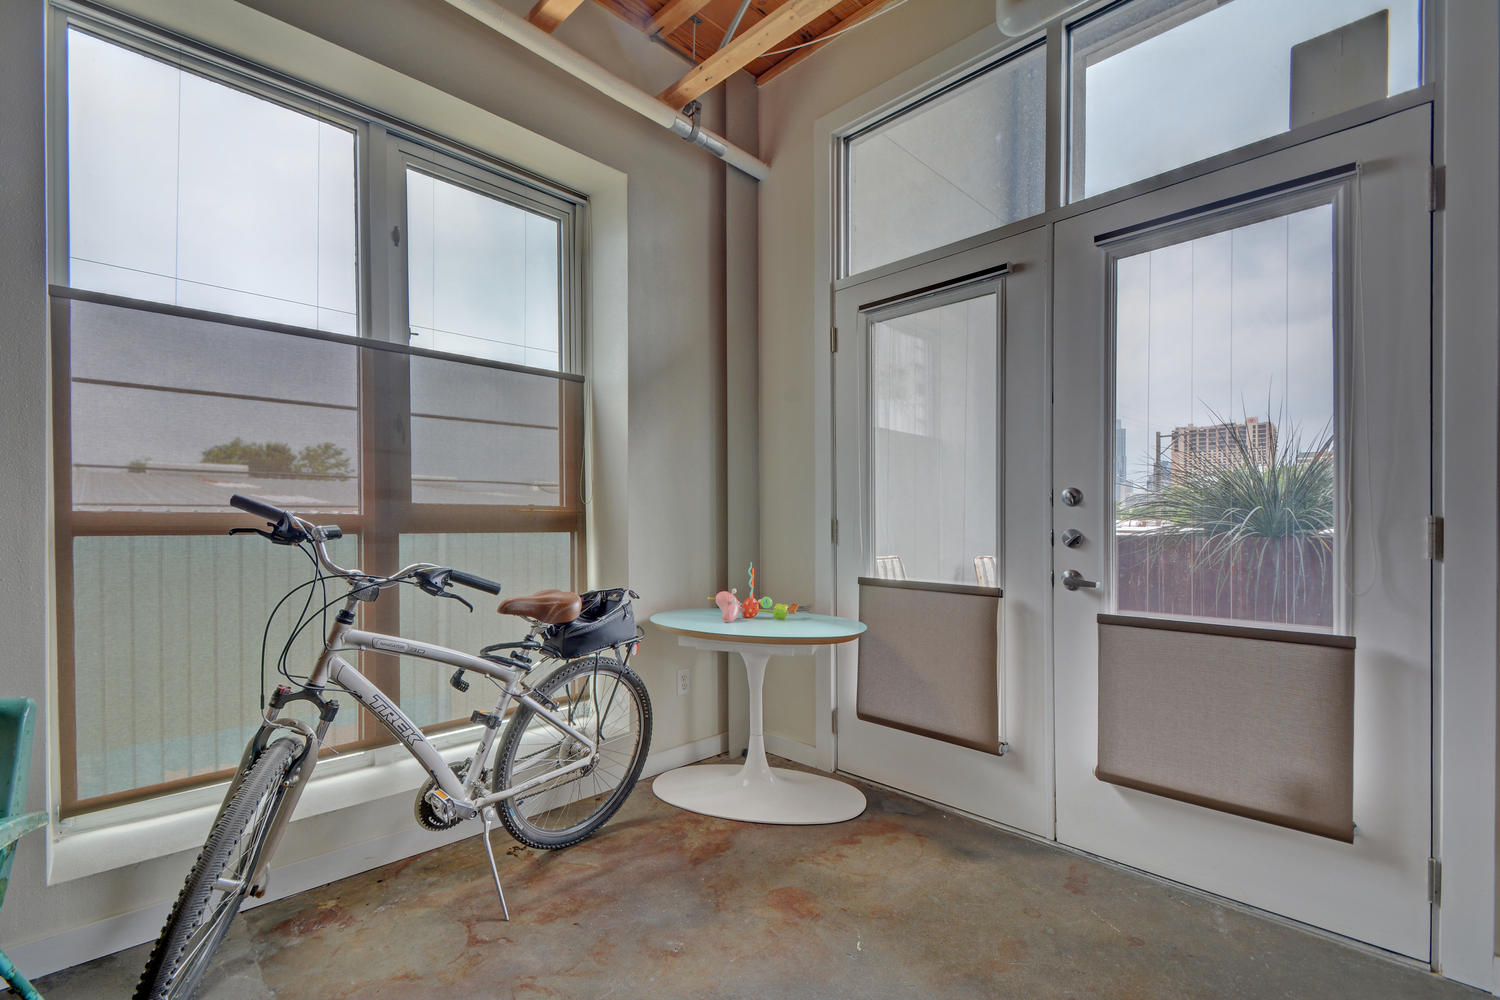 Two Story Foyer Conversion Cost : Sweet eastside loft back on market with another big price